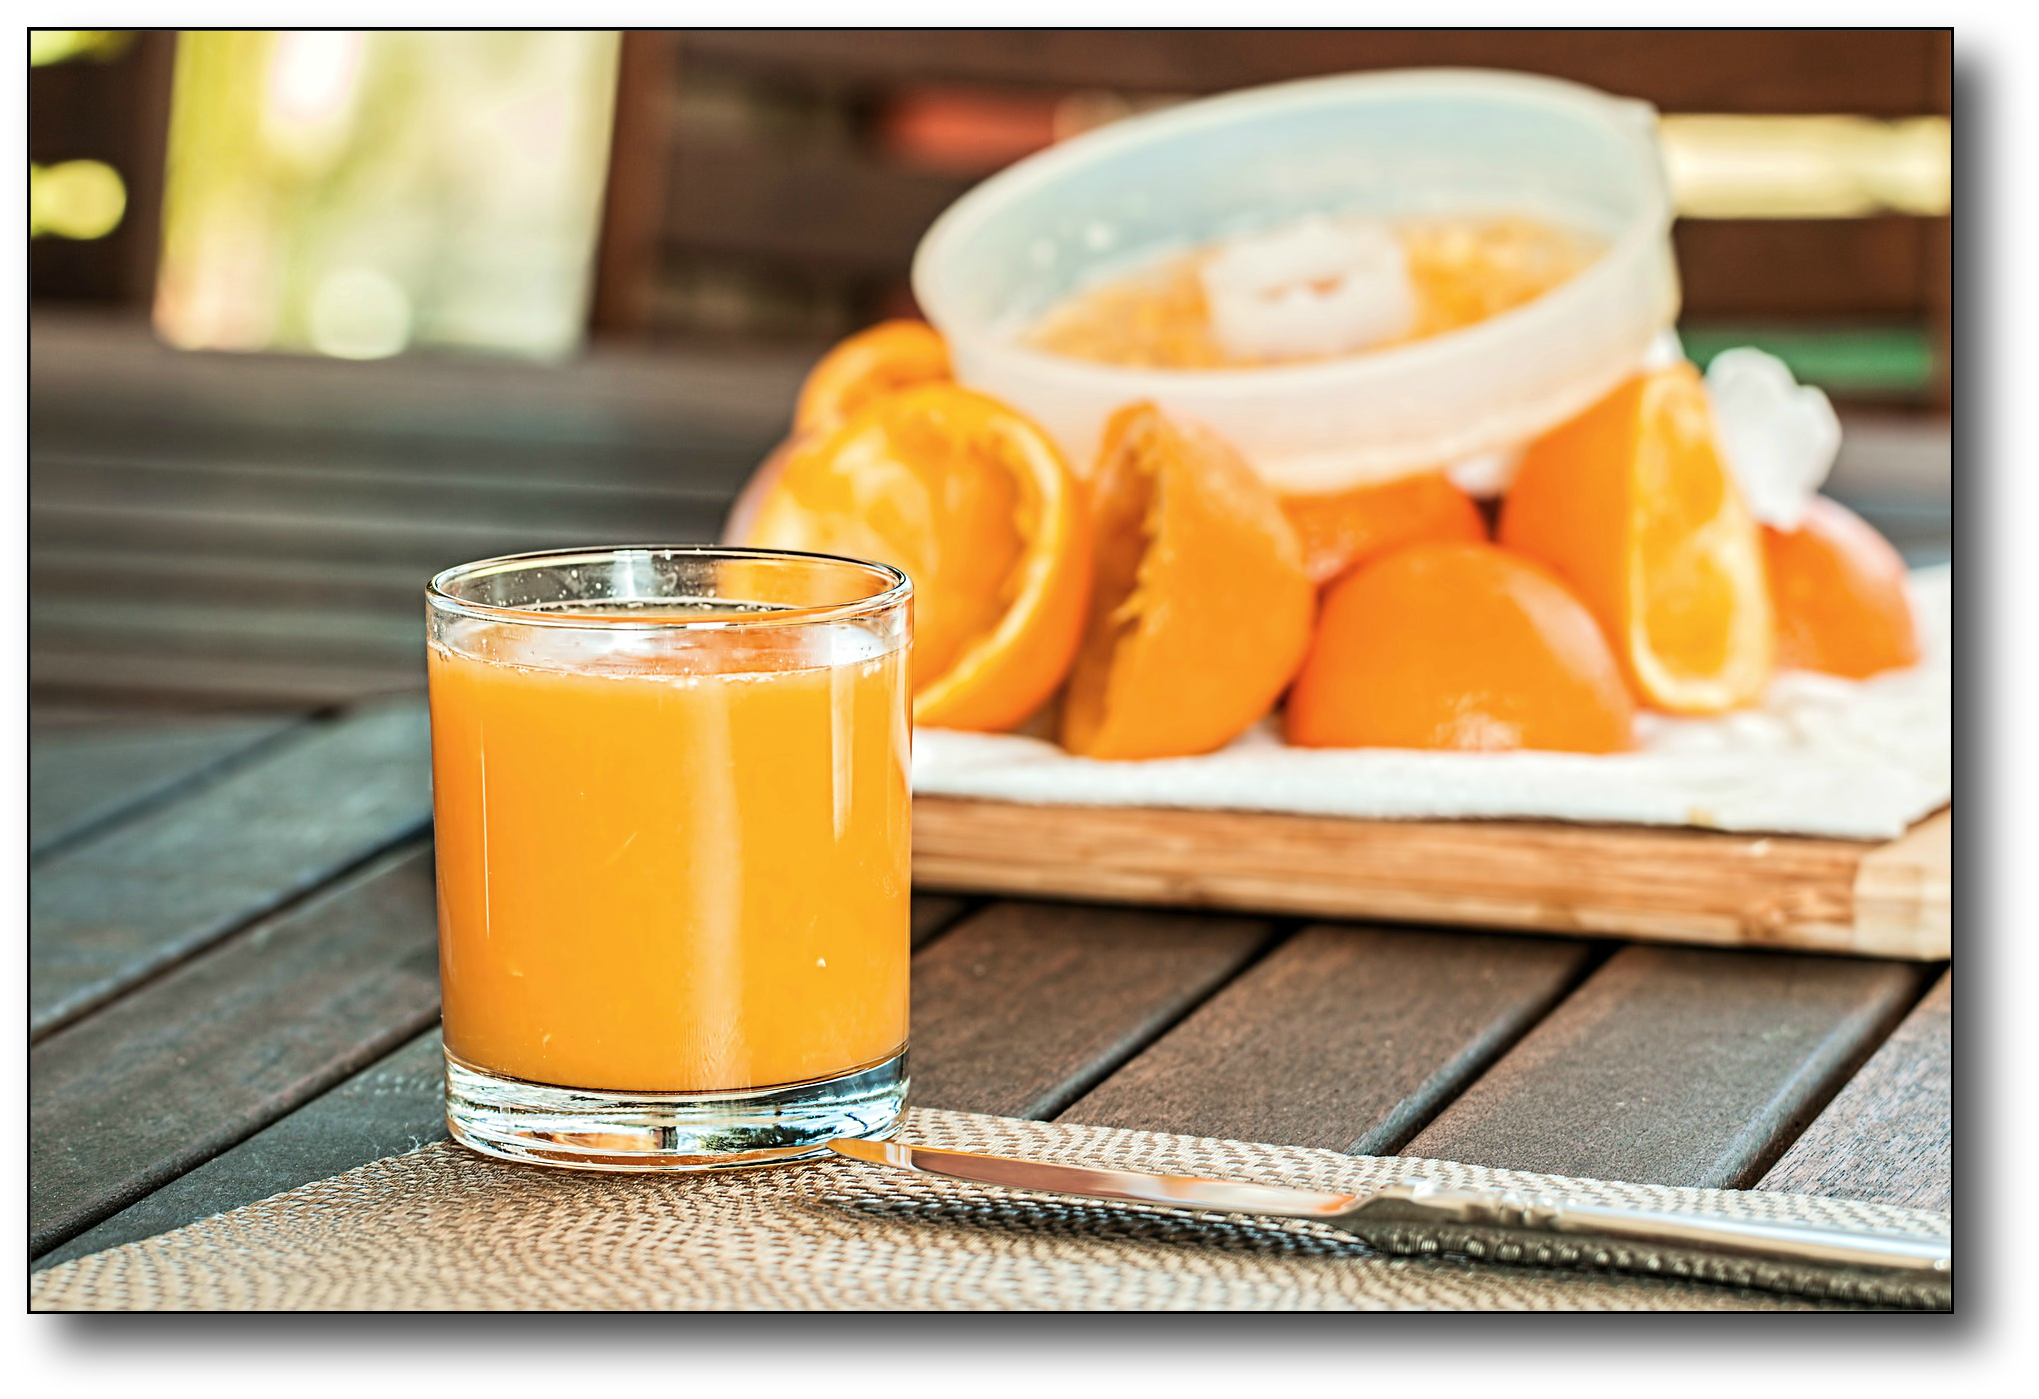 fruit juice concentrate - orange juice